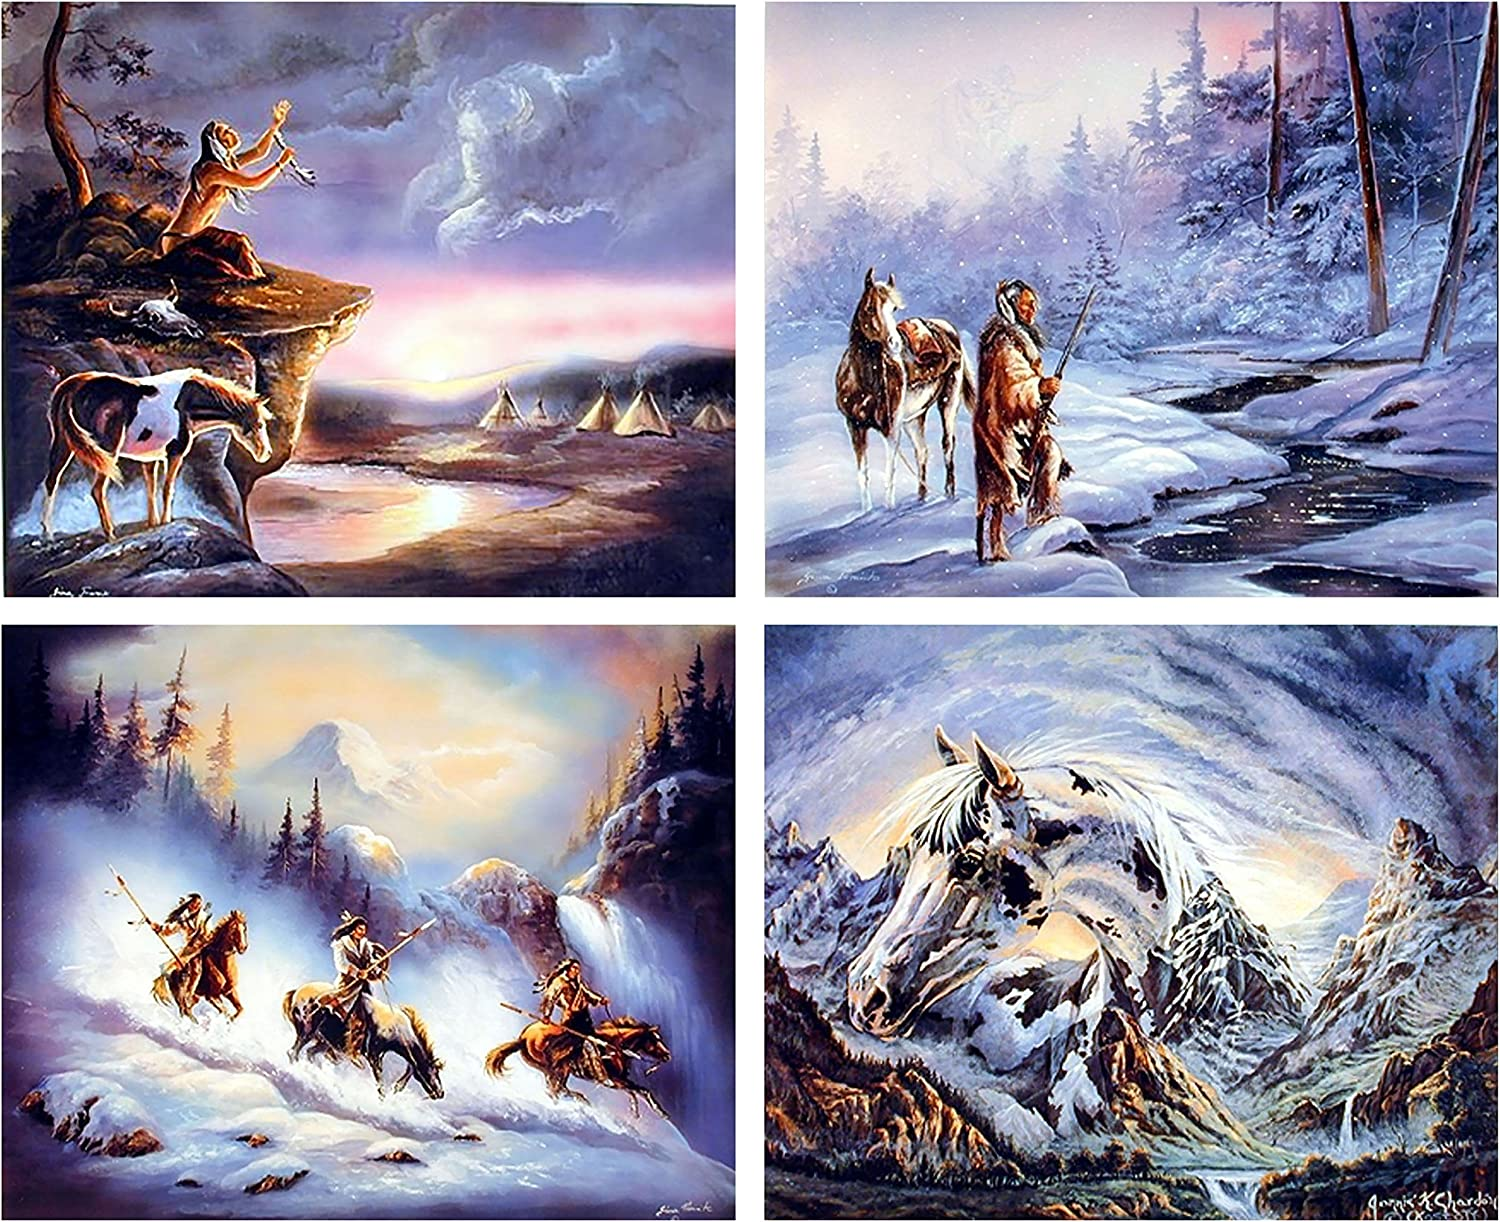 Native American Indian Warrior Eagle Spirit Horse Picture 16x20 Four Set Wall Decor Art Print Poster